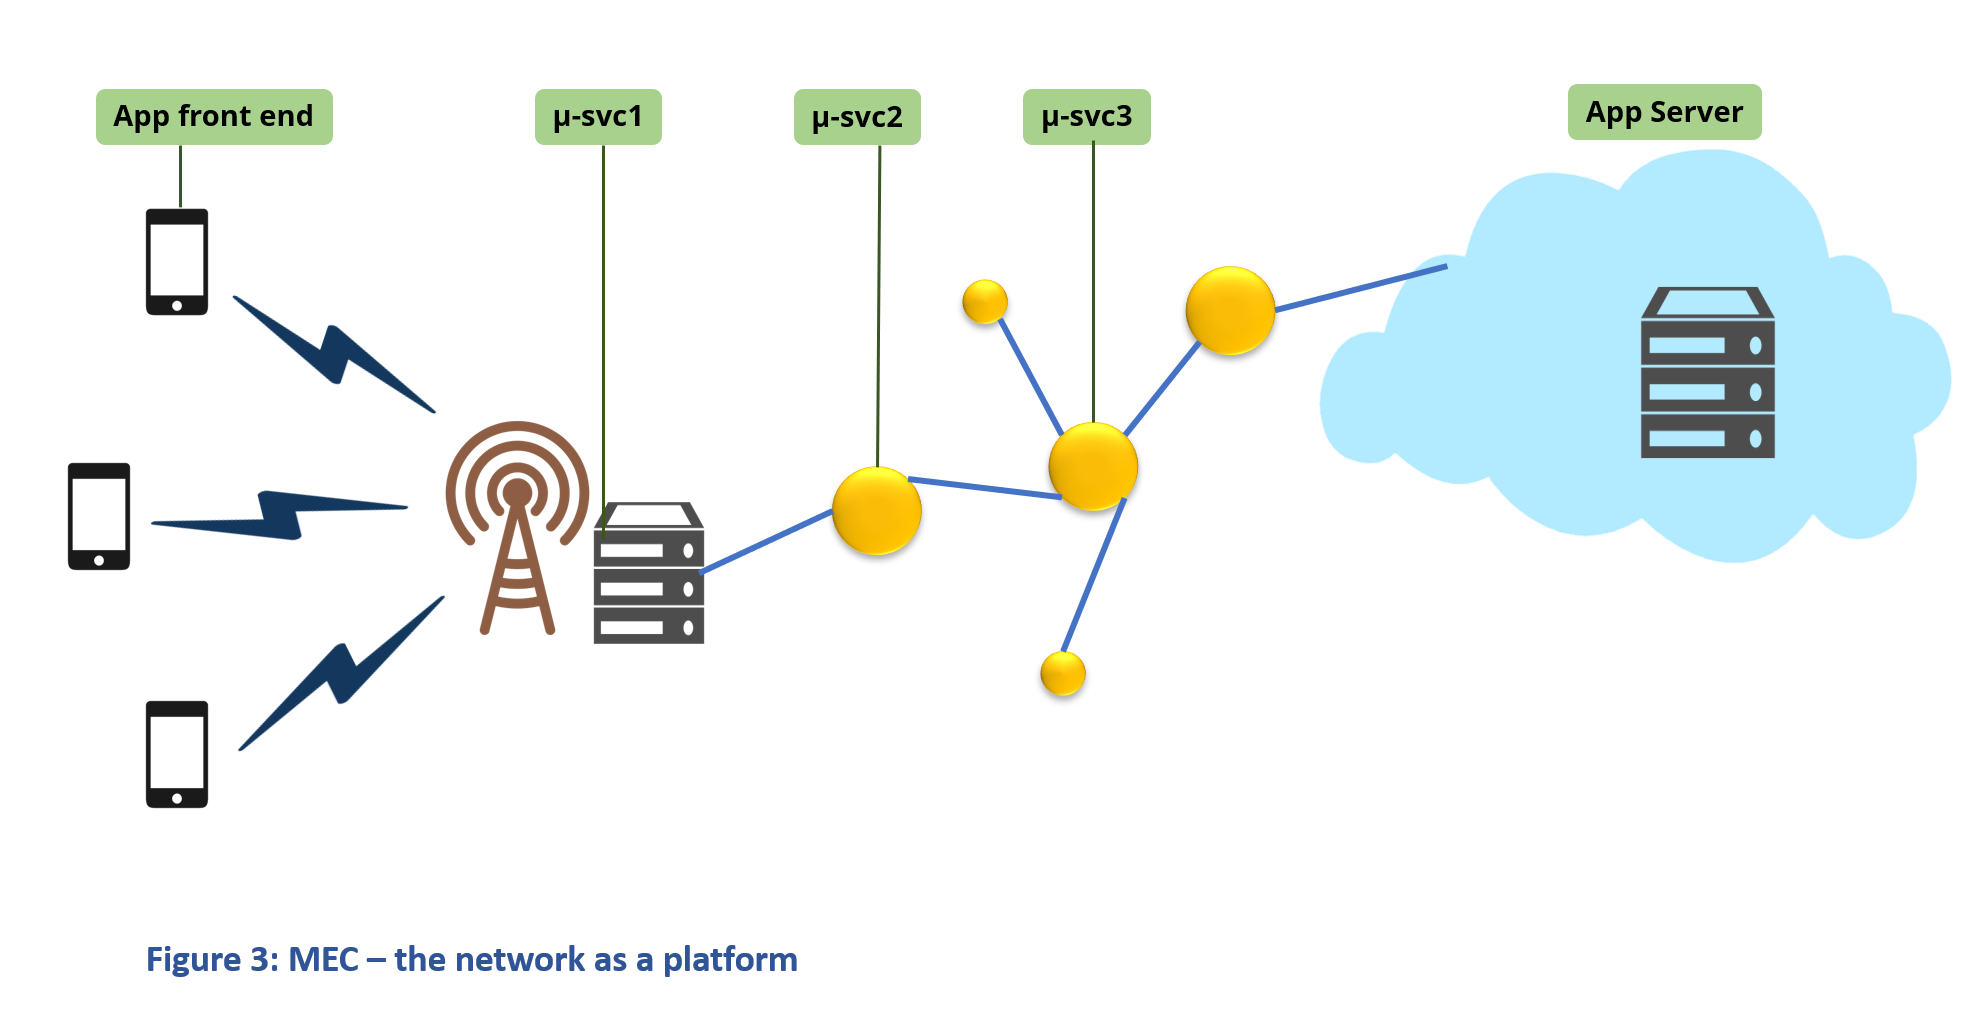 Mobile edge computing (MEC) Network as a platform